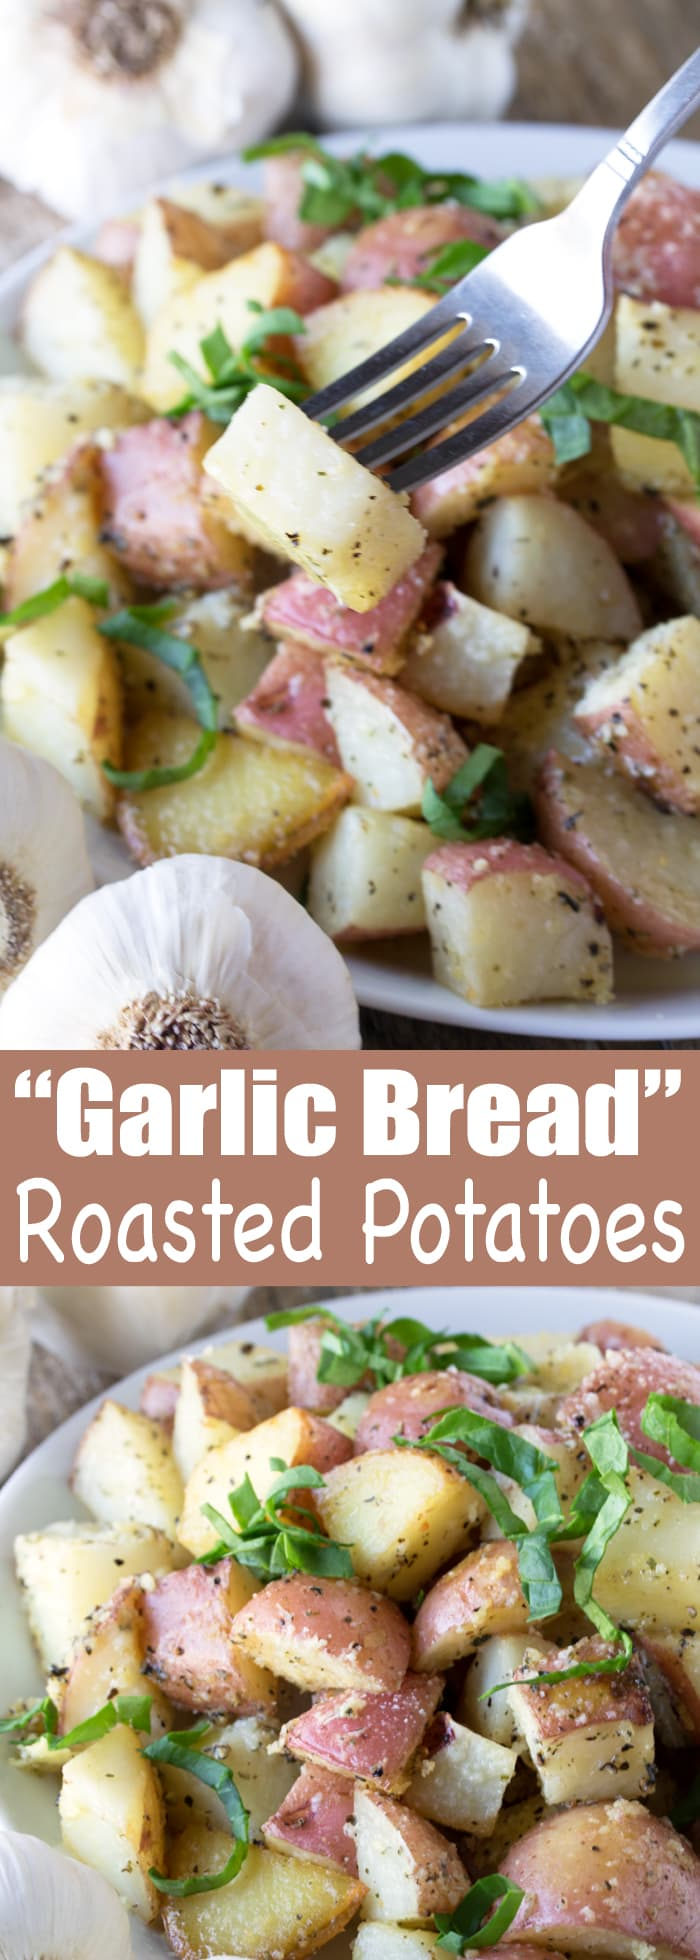 All the flavors of garlic bread you love in an easy roasted potato dish. I call them Garlic Bread Roasted Potatoes. Easy and delicious!